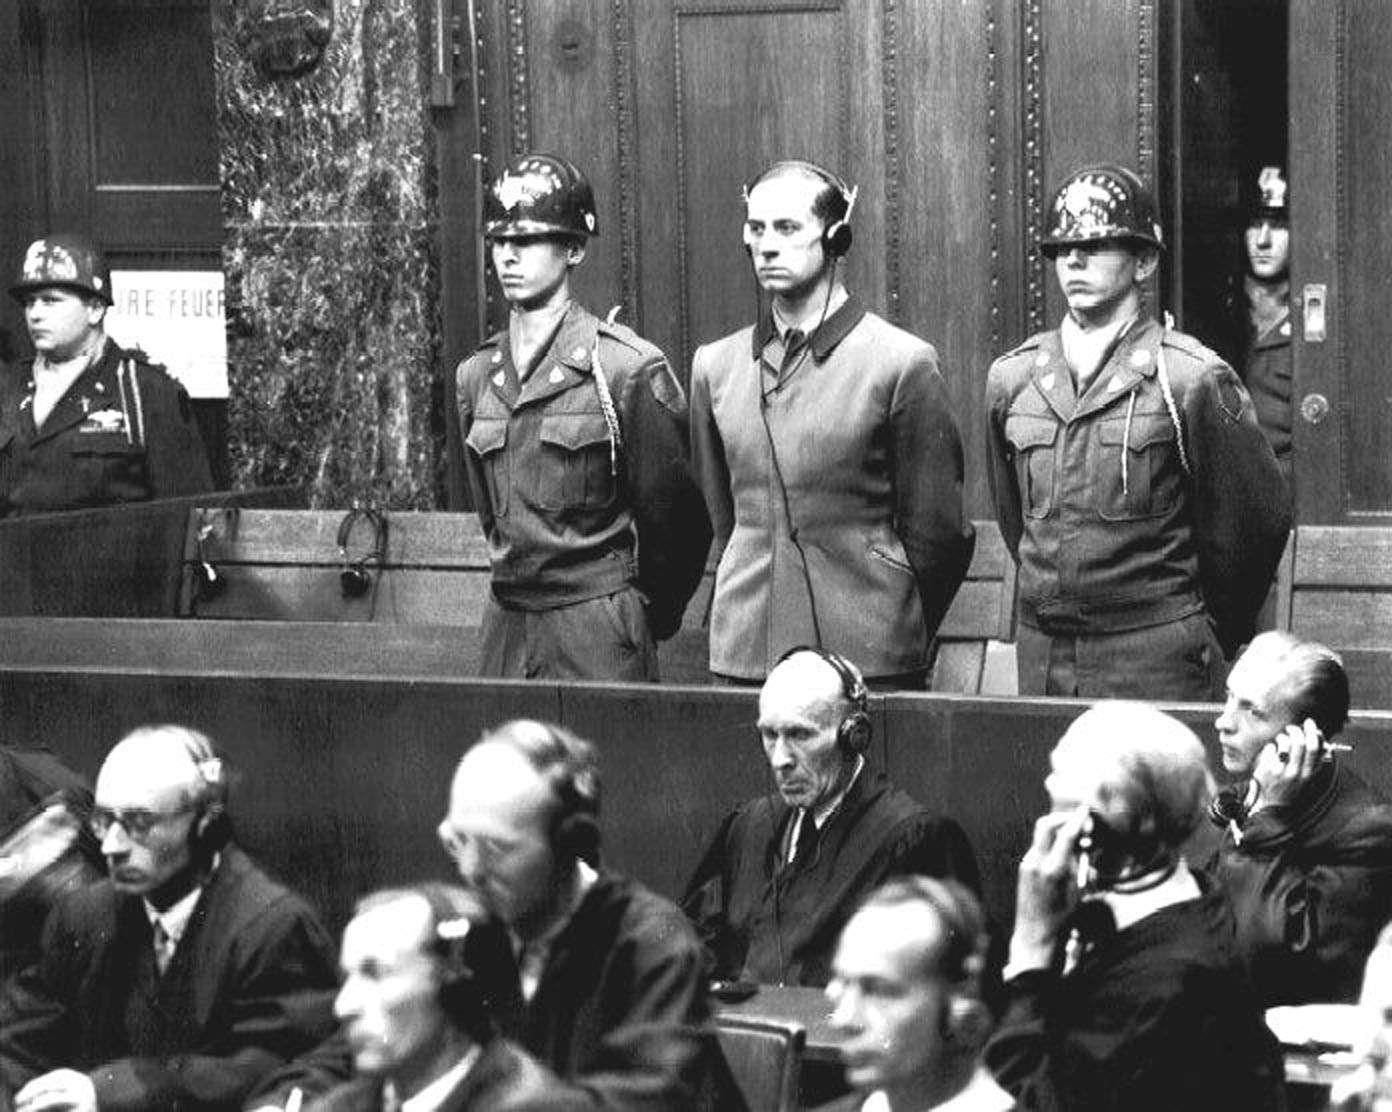 an analysis of adolf hitlers leadership during the war A secret analysis of adolf hitler's mental state which was drawn up by british intelligence in april 1942 has been uncovered by a researcher during world war ii was hitler's growing paranoia by this, maccurdy meant the nazi leader's messiah complex.